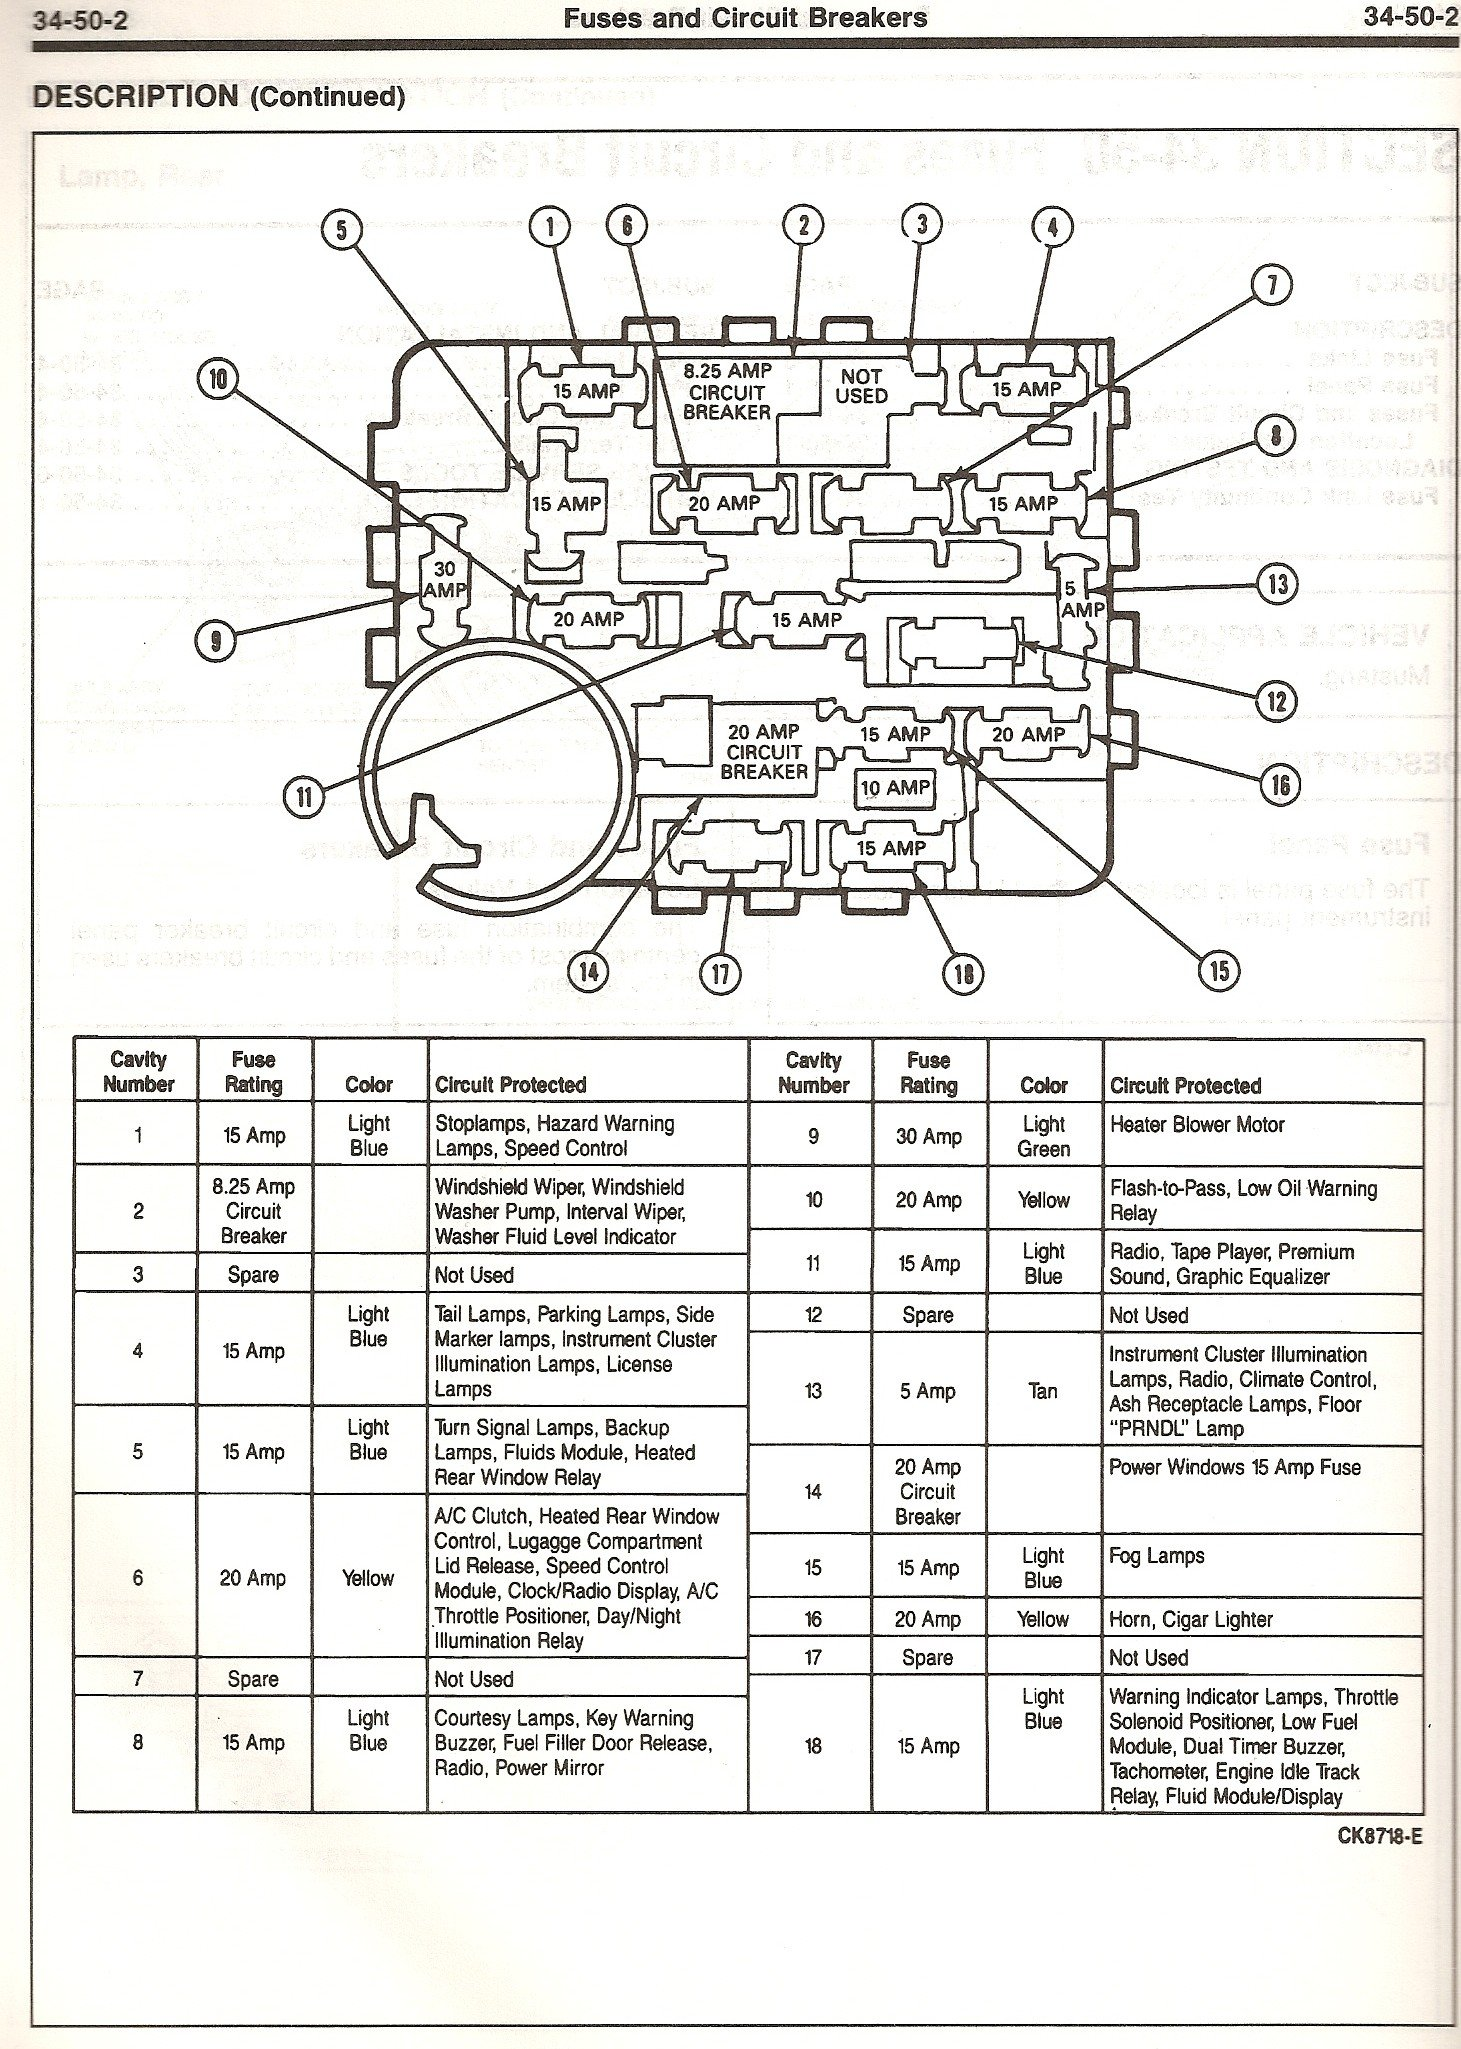 8964R09 PARKING BRAKE moreover Wiring Diagram For Chevy Silverado besides Discussion D902 ds631847 also 6818o Dodge Ram 250 Pick Up 1989 Dodge Ram 250 Pick Up I moreover 8100 harness. on dodge ram 1500 trailer wiring diagram